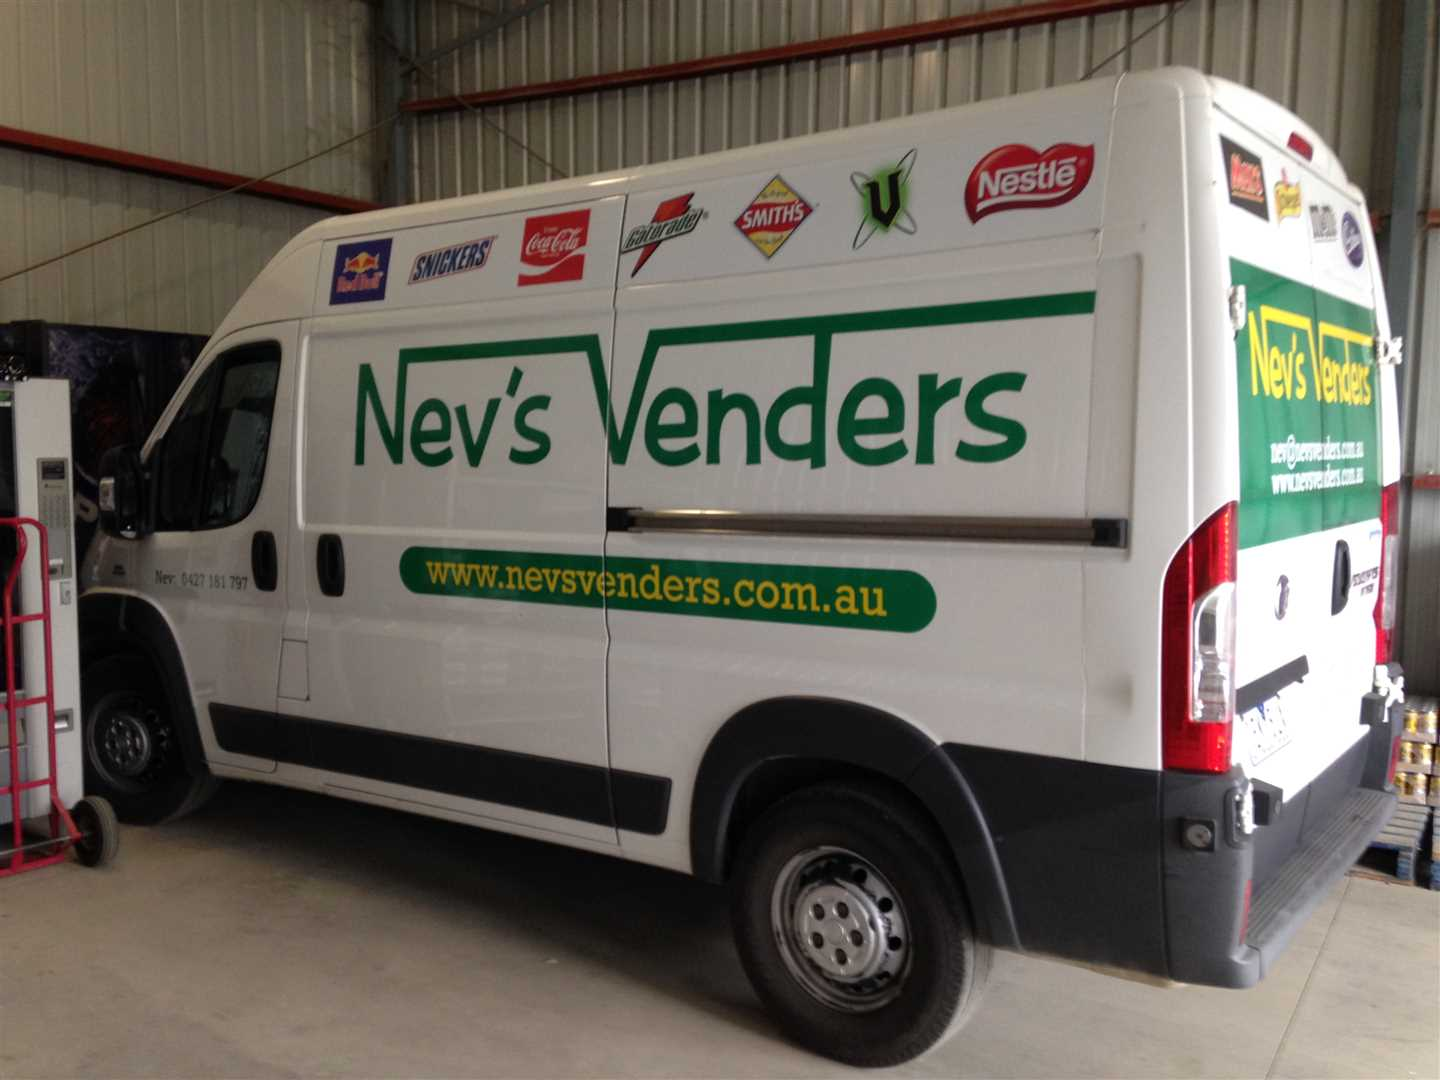 Business for Sale - Nev's Venders, Echuca